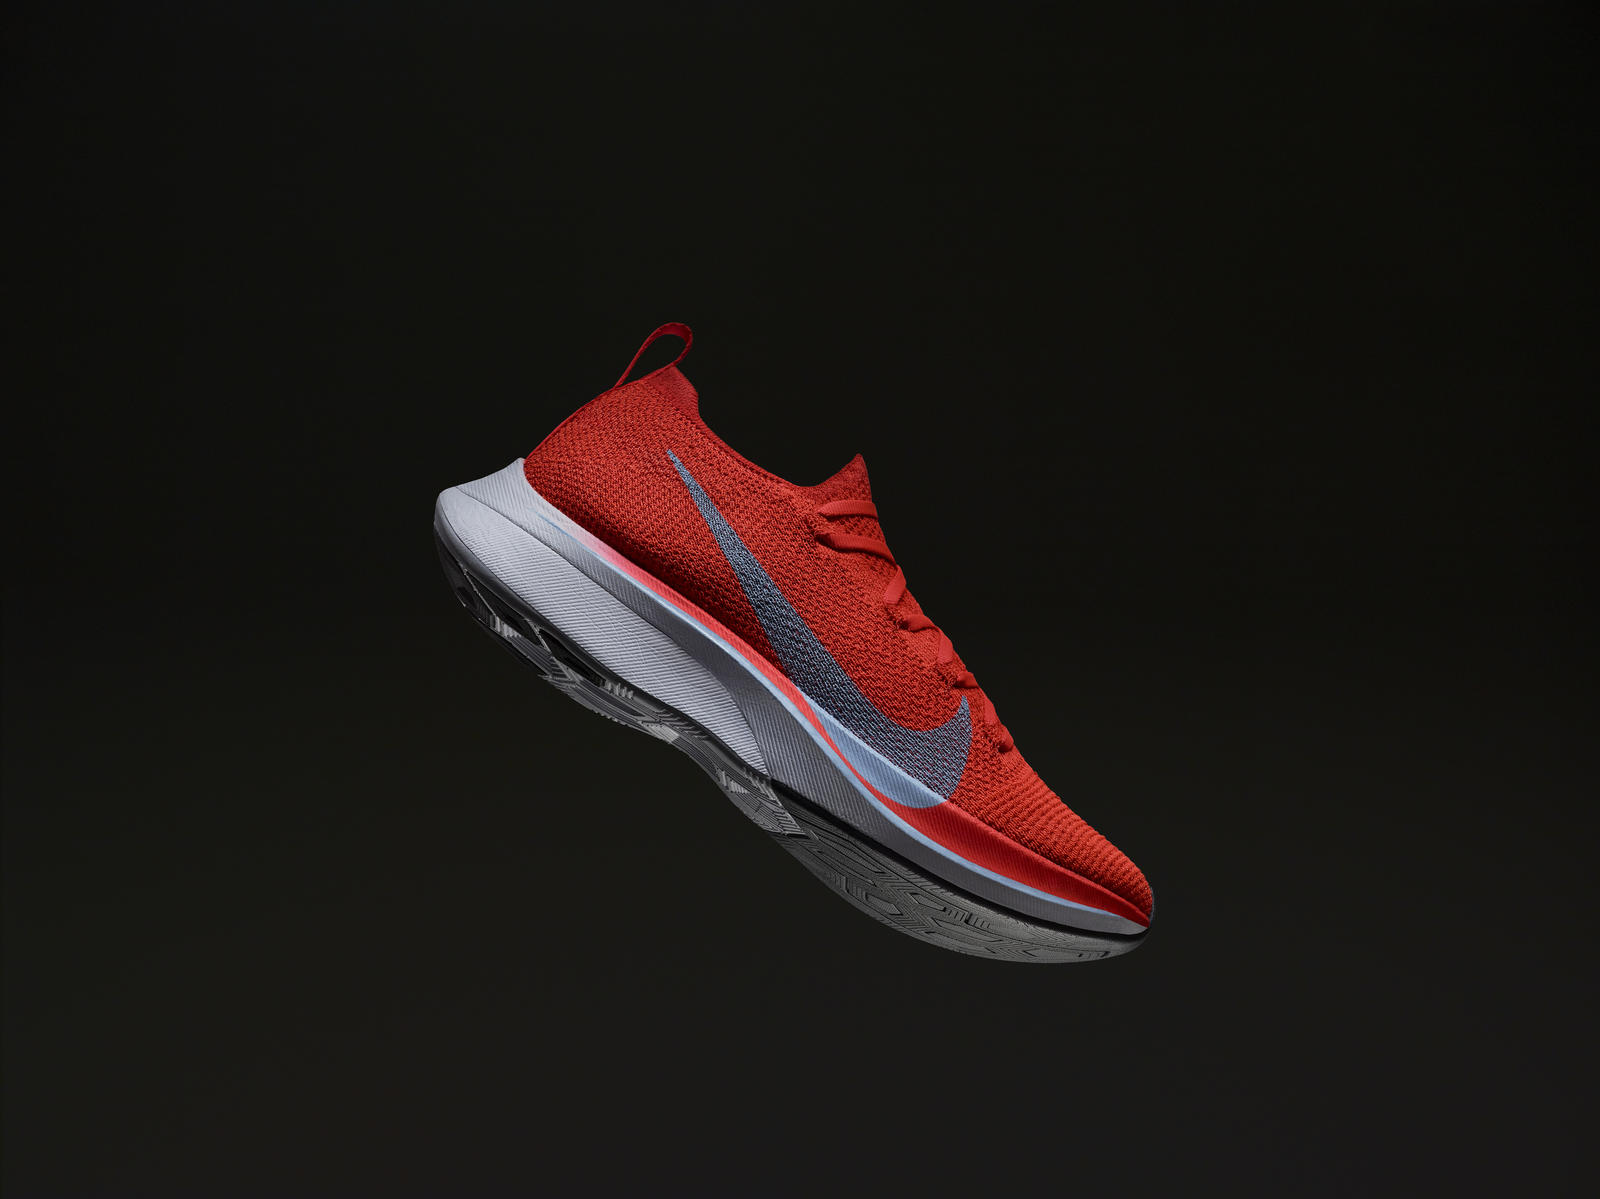 buy online 5bcb0 2153b Source  https   news.nike.com news how-to-get-the-nike-zoom-vaporfly-4